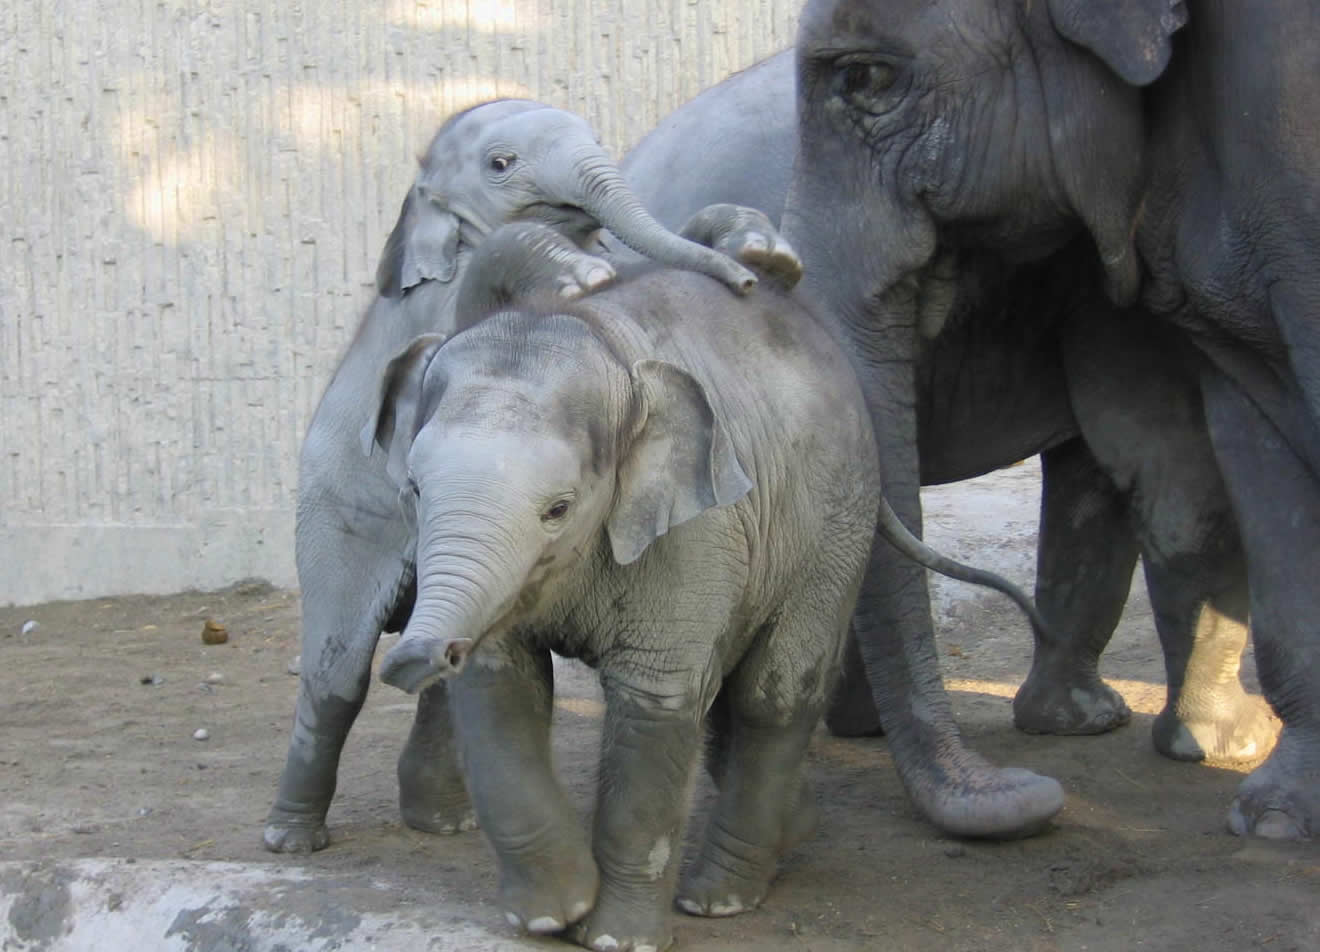 Playing elephant children